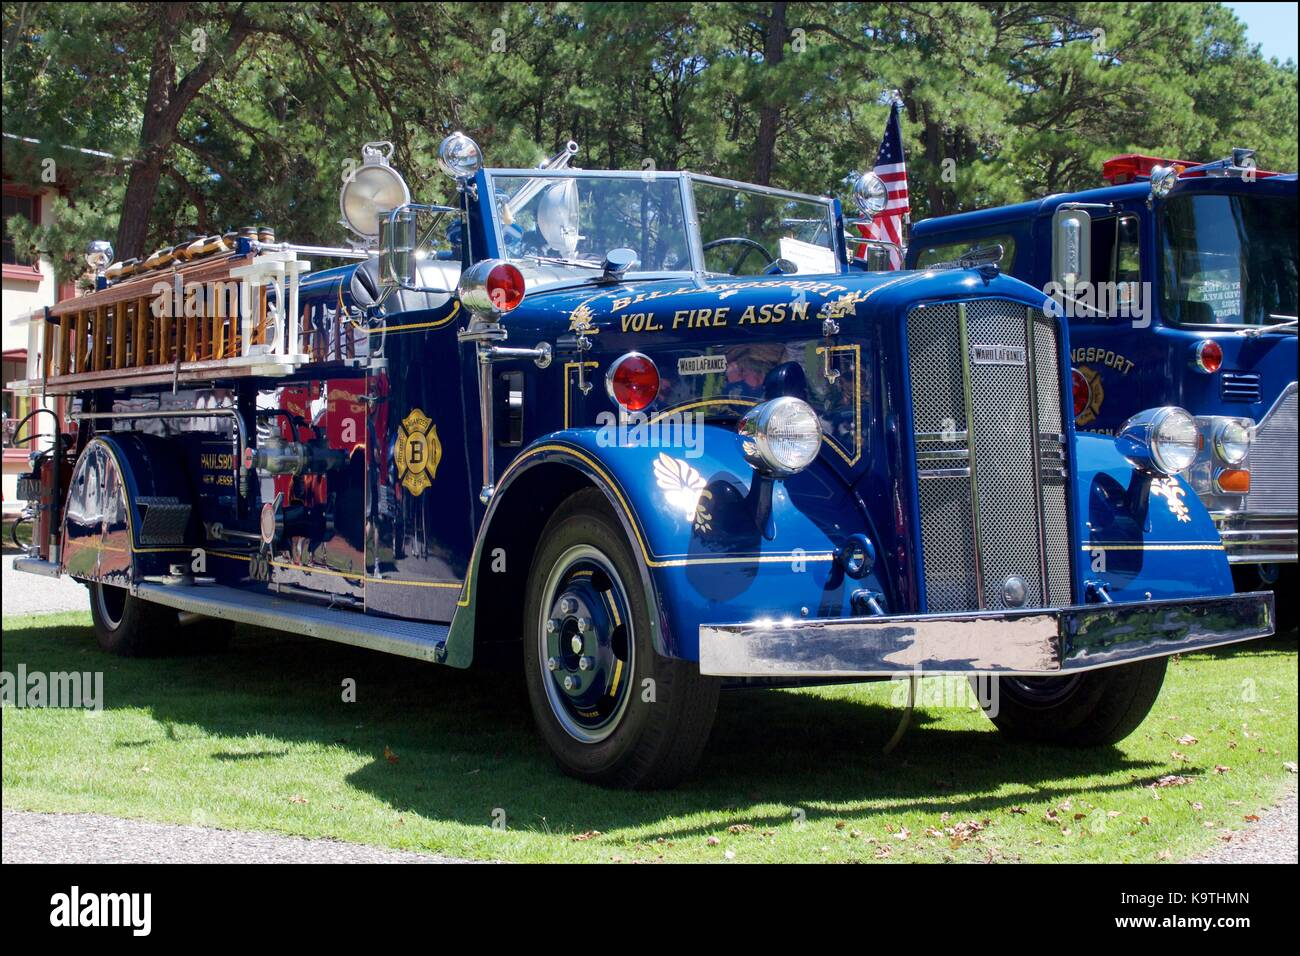 Vintage blue 1949 Ward LaFrance fire truck on display at a fire apparatus muster. - Stock Image